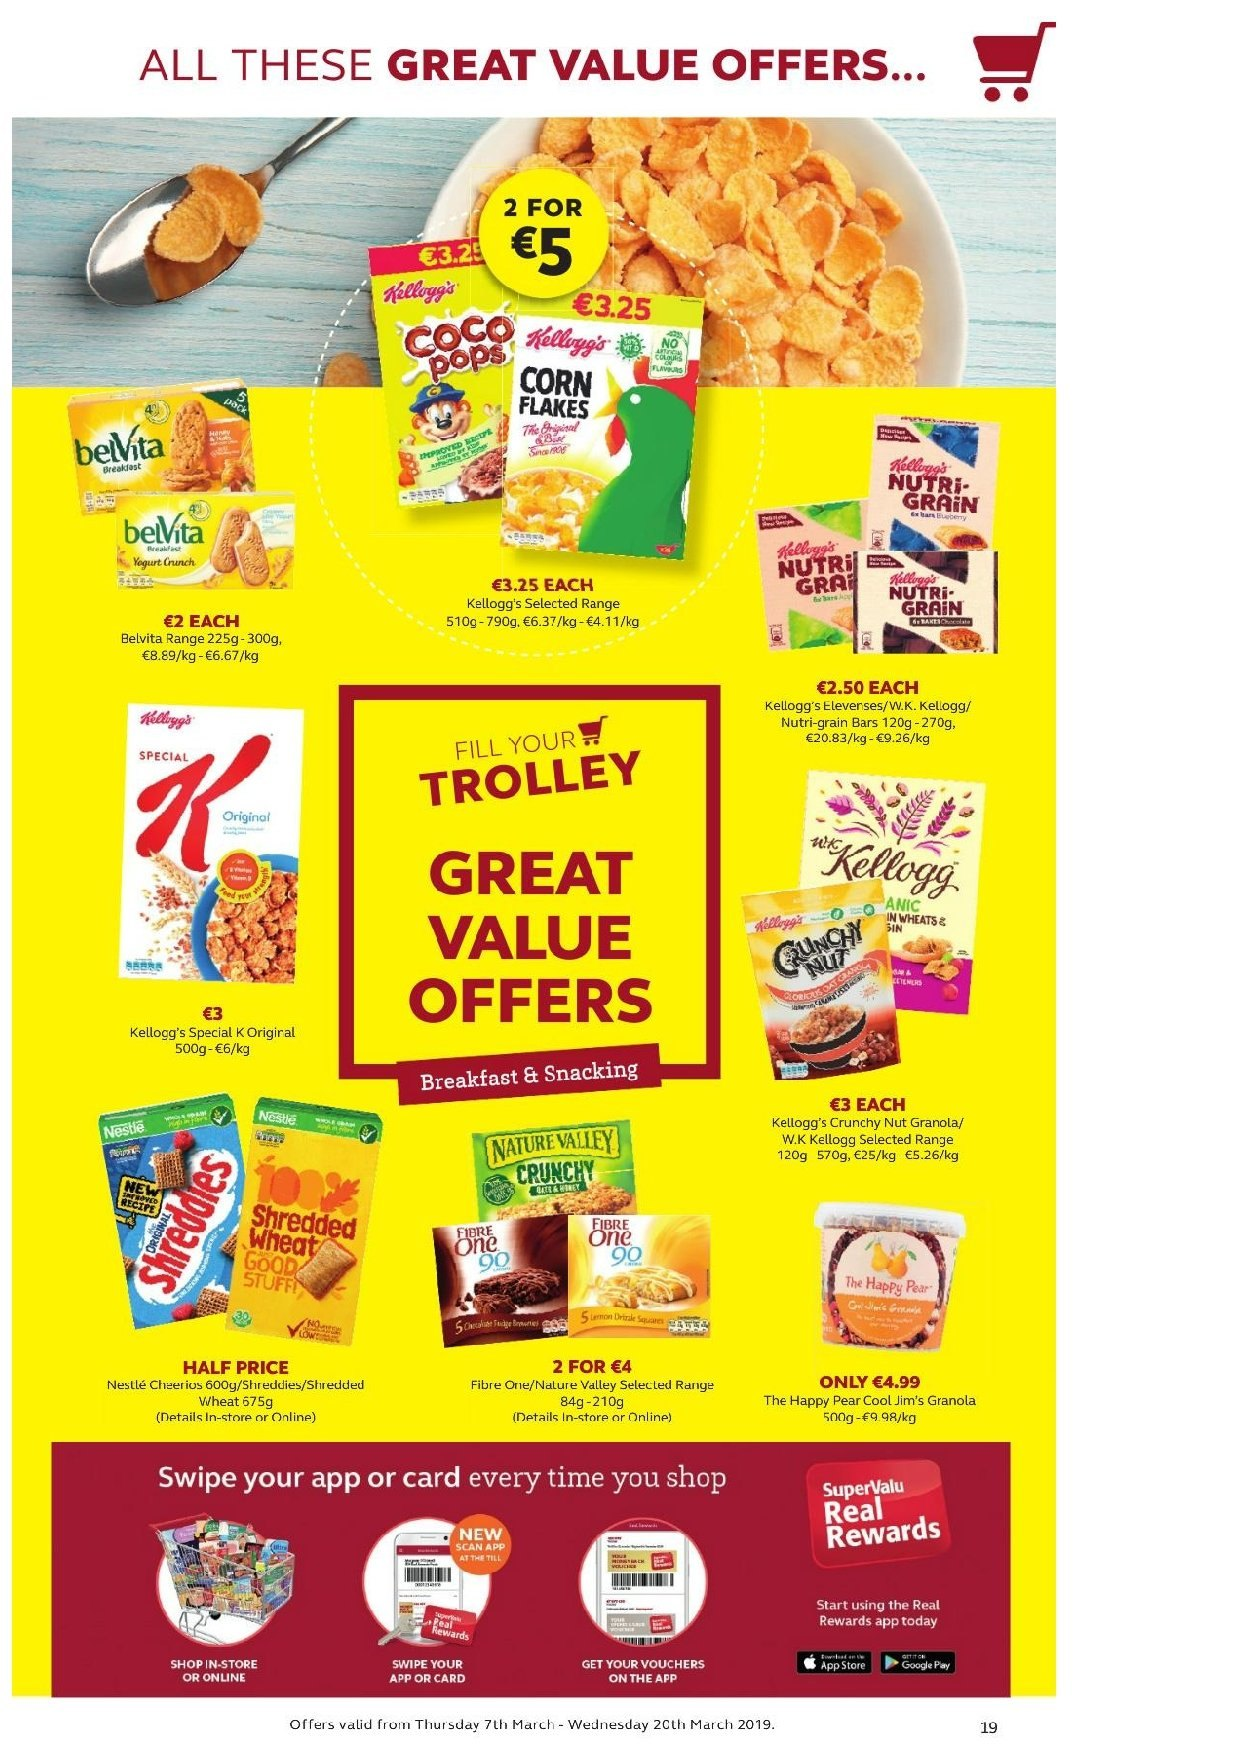 SuperValu offer  - 7.3.2019 - 20.3.2019 - Sales products - Great Value, pears, Nestlé, Kellogg's, Nutri-Grain bars, granola, Cheerios, belVita, Nature Valley, Nutri-Grain, trolley. Page 18.